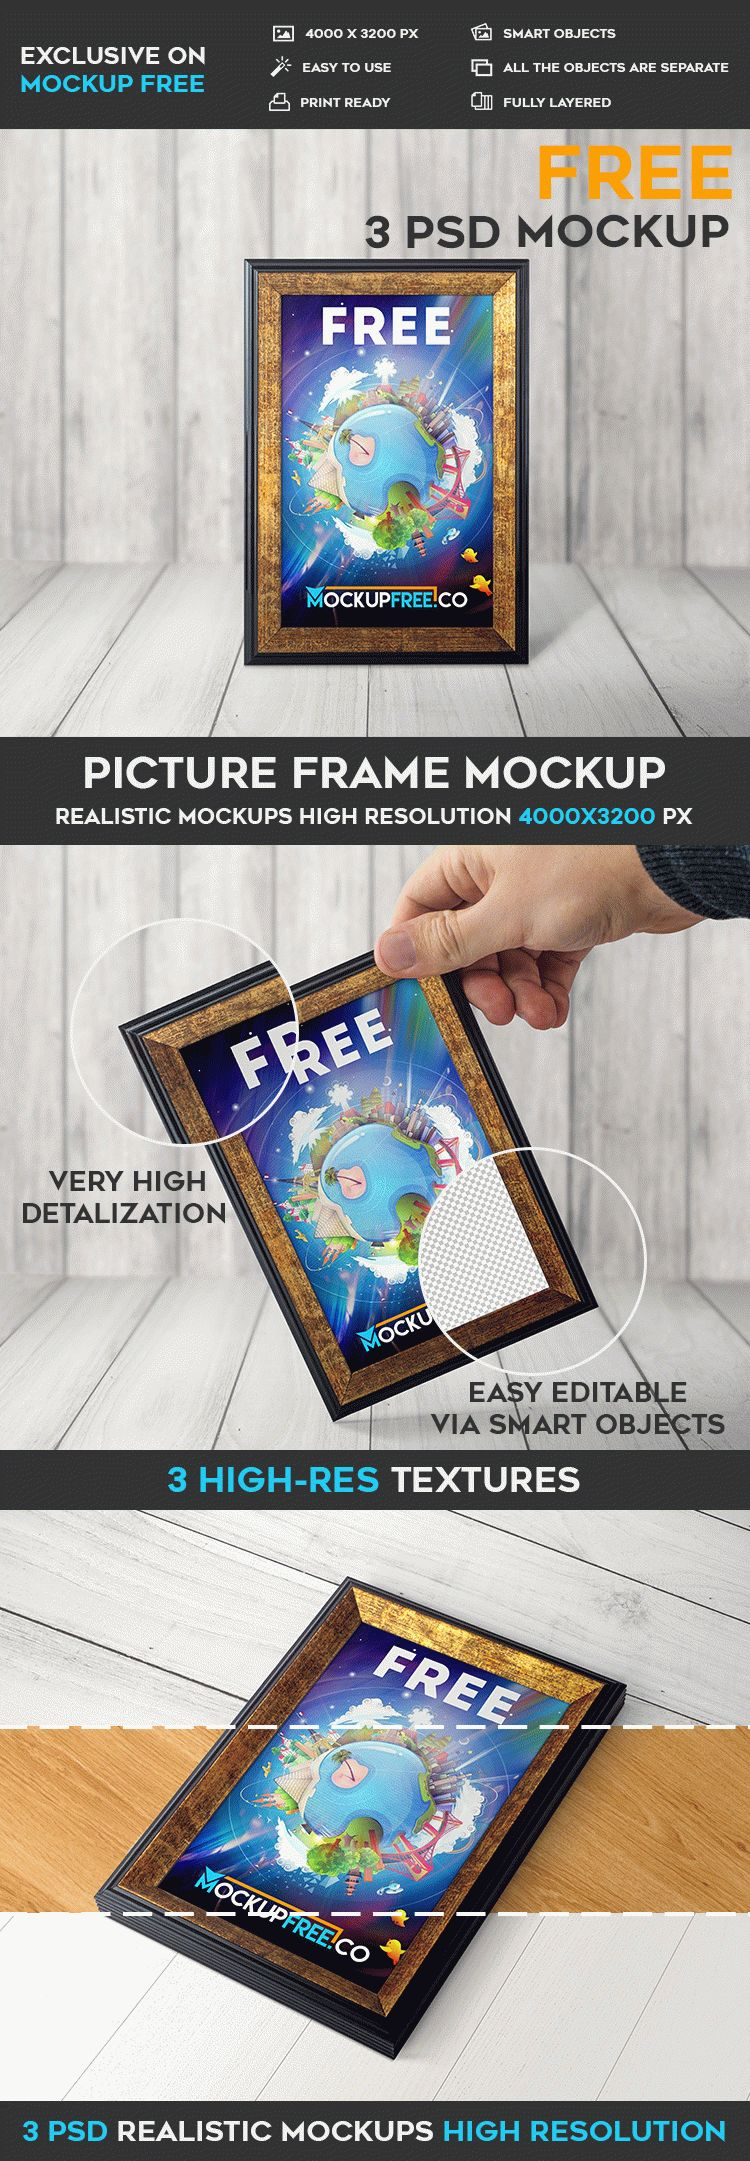 bigpreview_picture-frame-free-psd-mockup